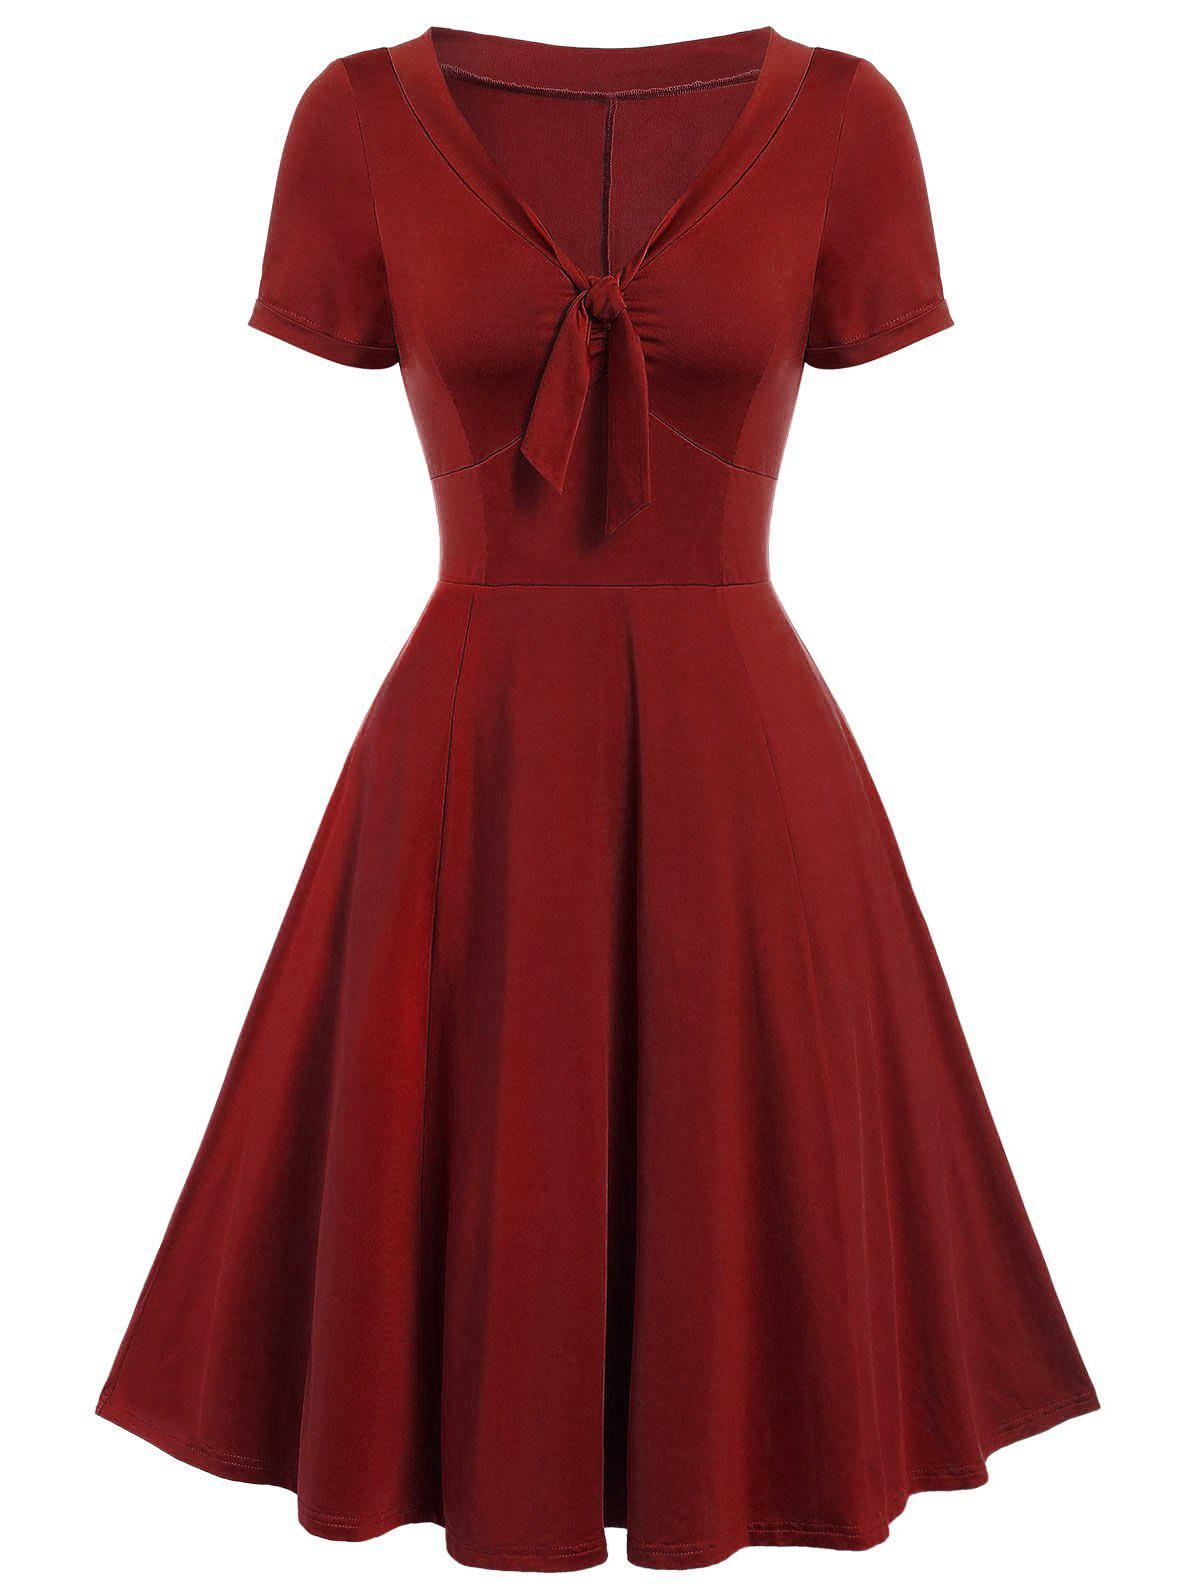 Online Vintage Bow Tie Fit and Flare Dress